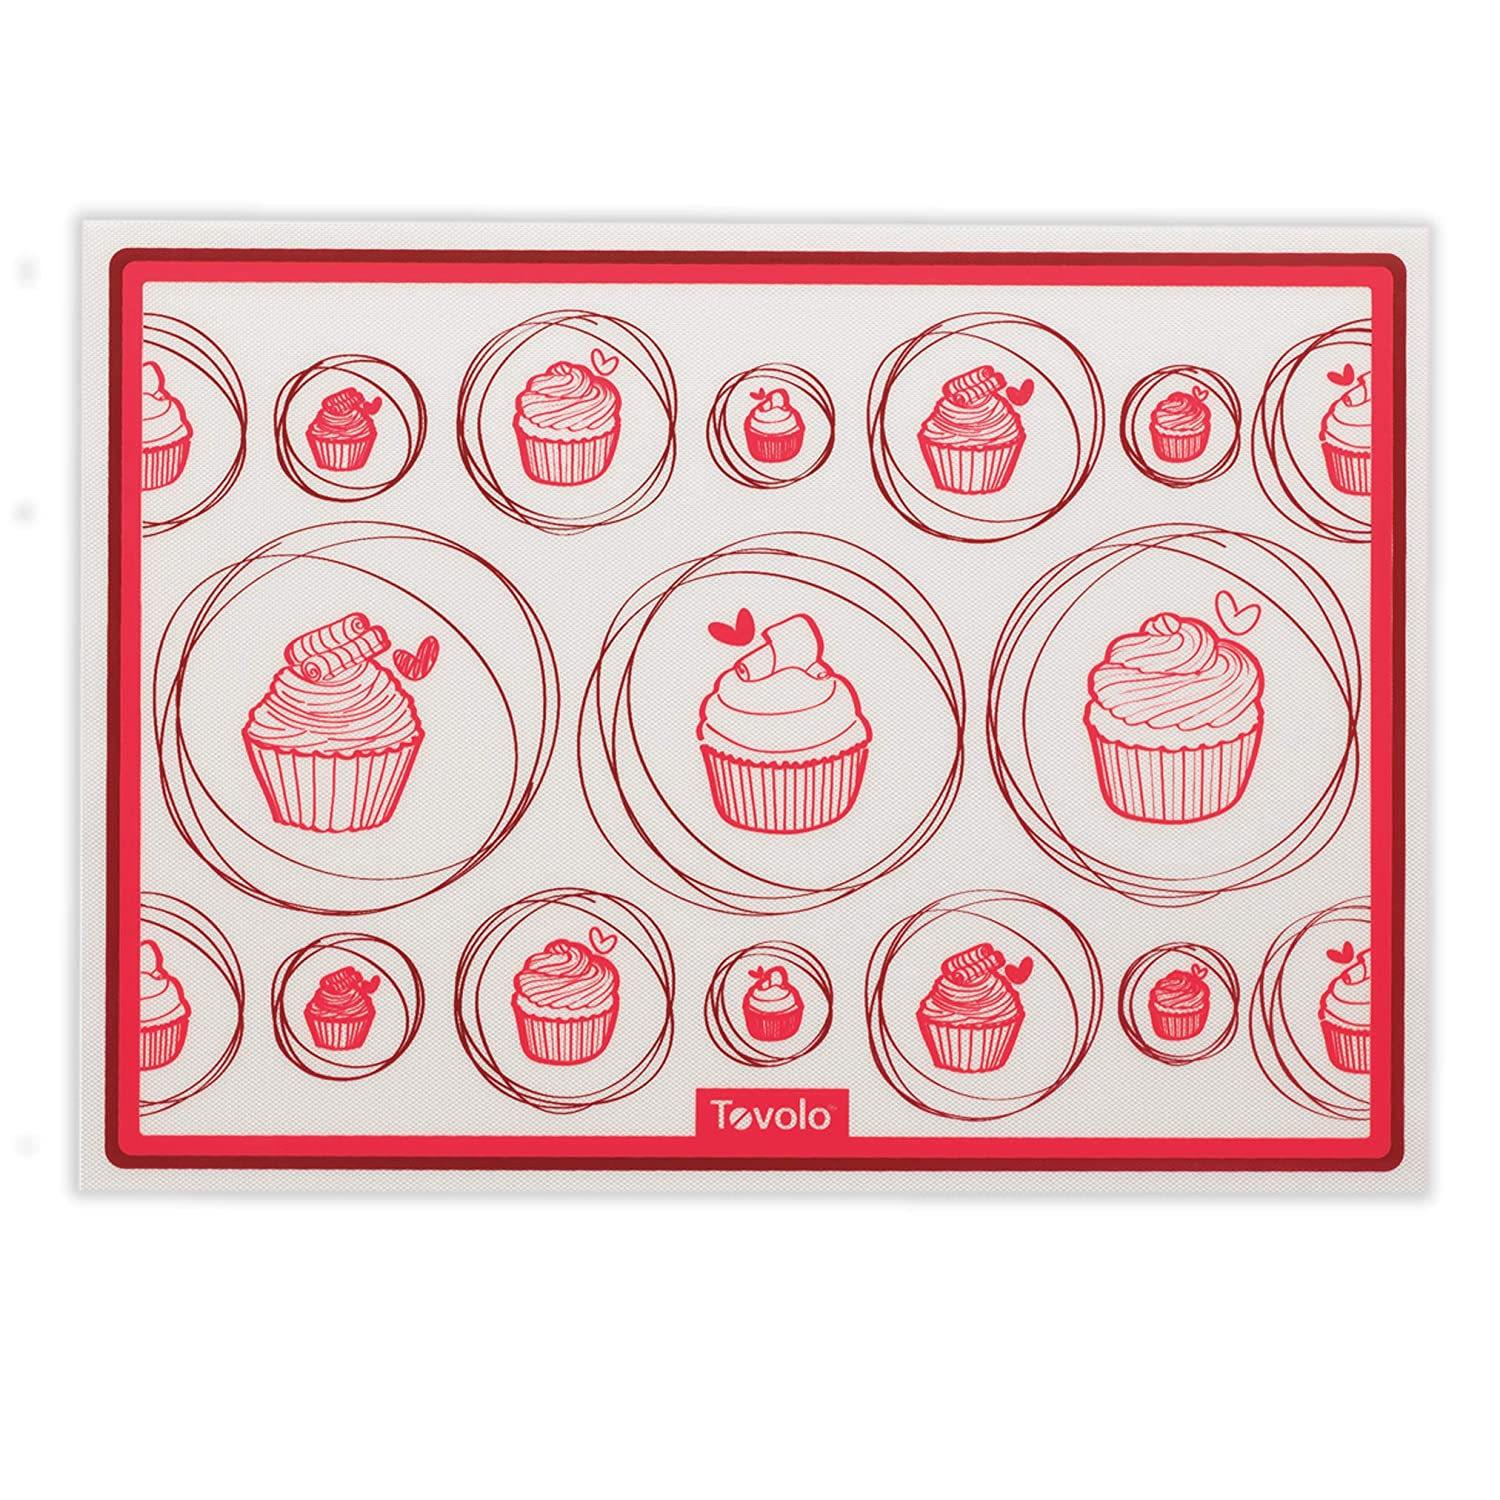 Tovolo Silicone Toaster Oven Baking Mat, Non-Stick, No-Burn Baking, Heat-Resistant to 600?F